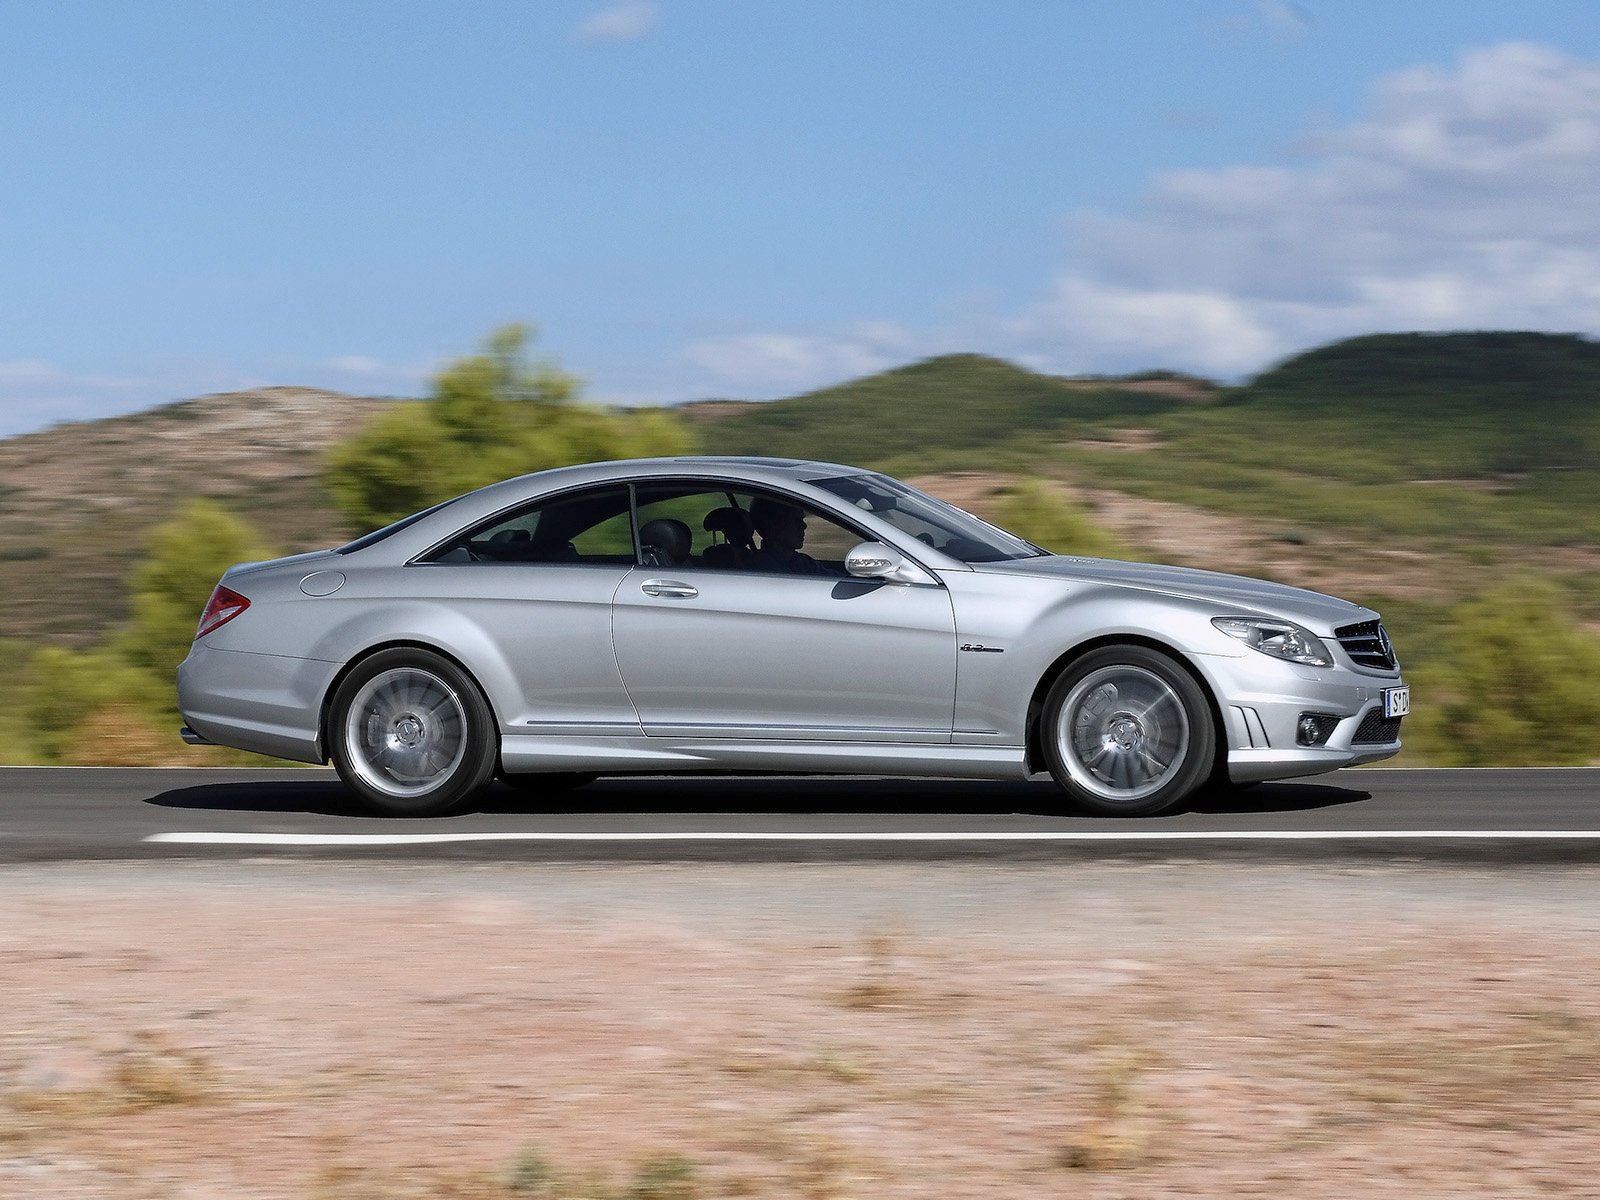 2007 Mercedes Benz CL 63 AMG 8